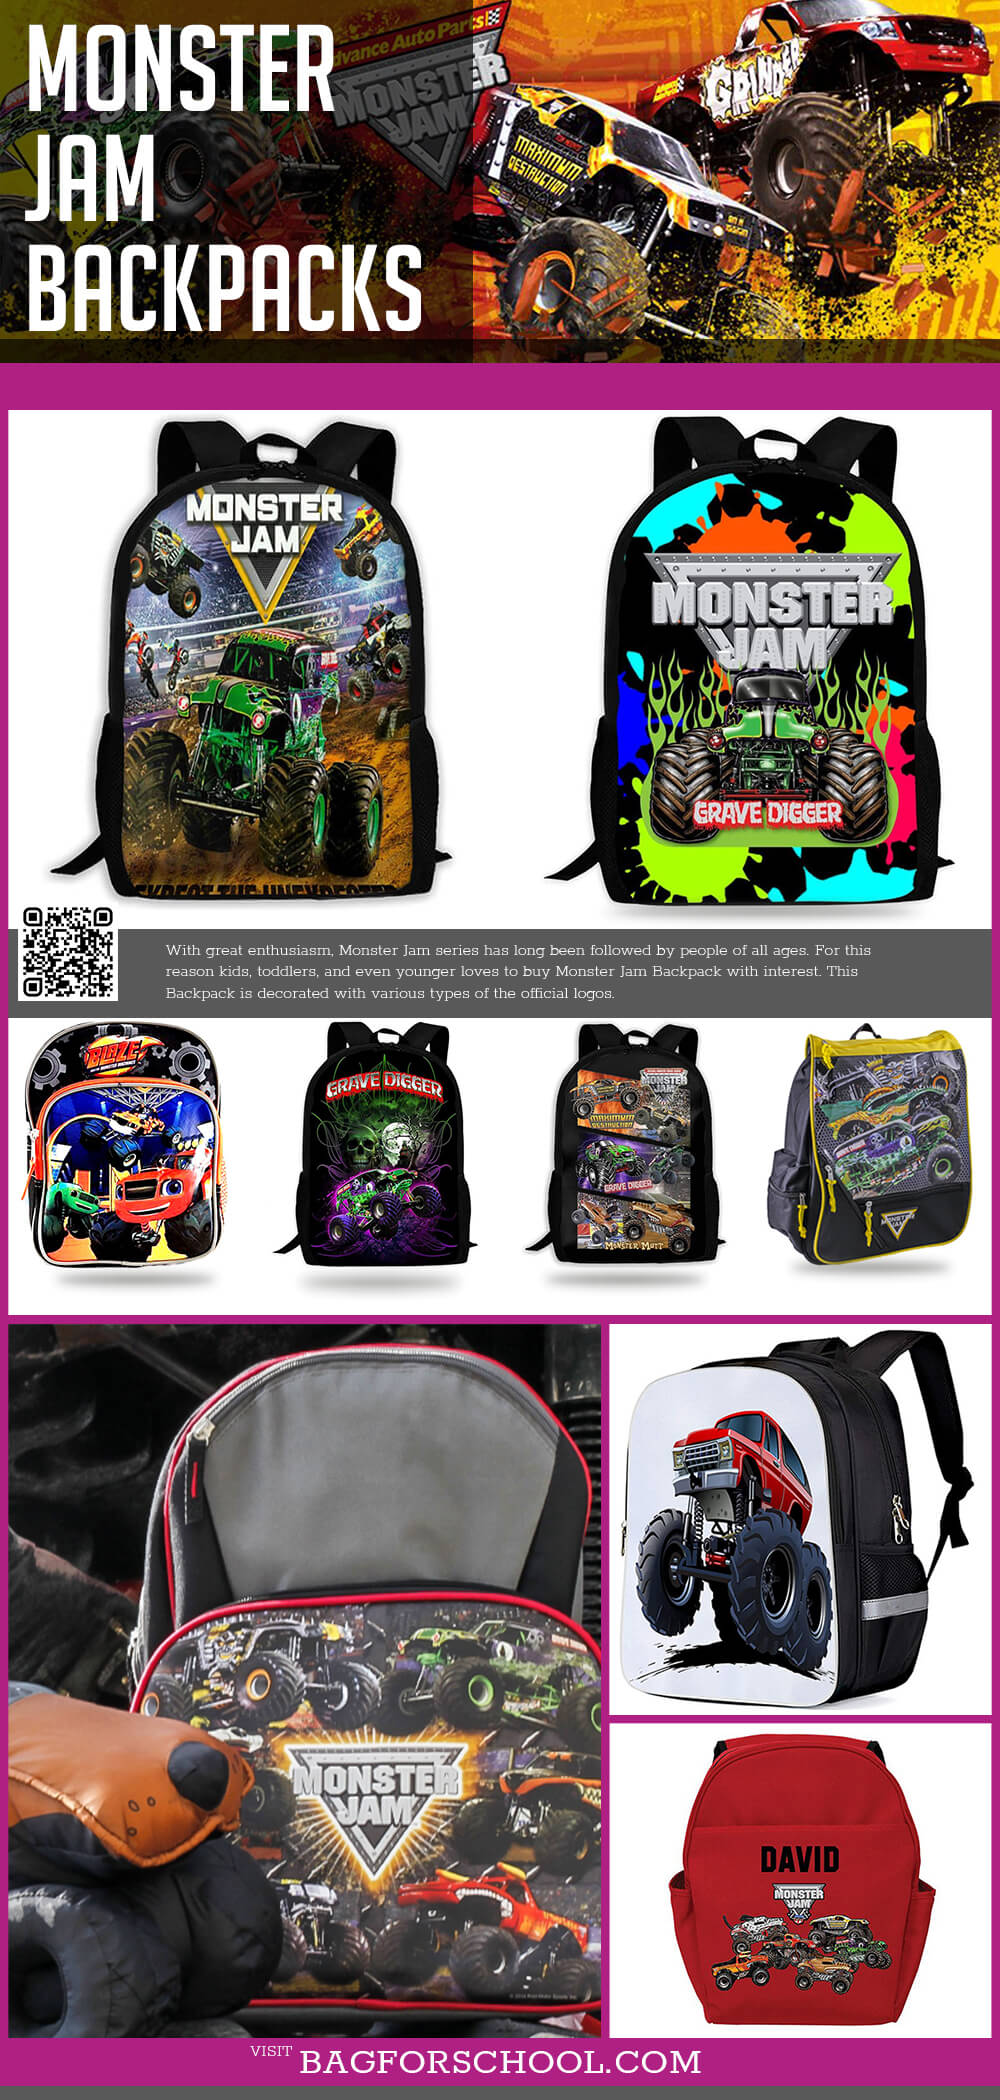 Monster Jam Backpacks